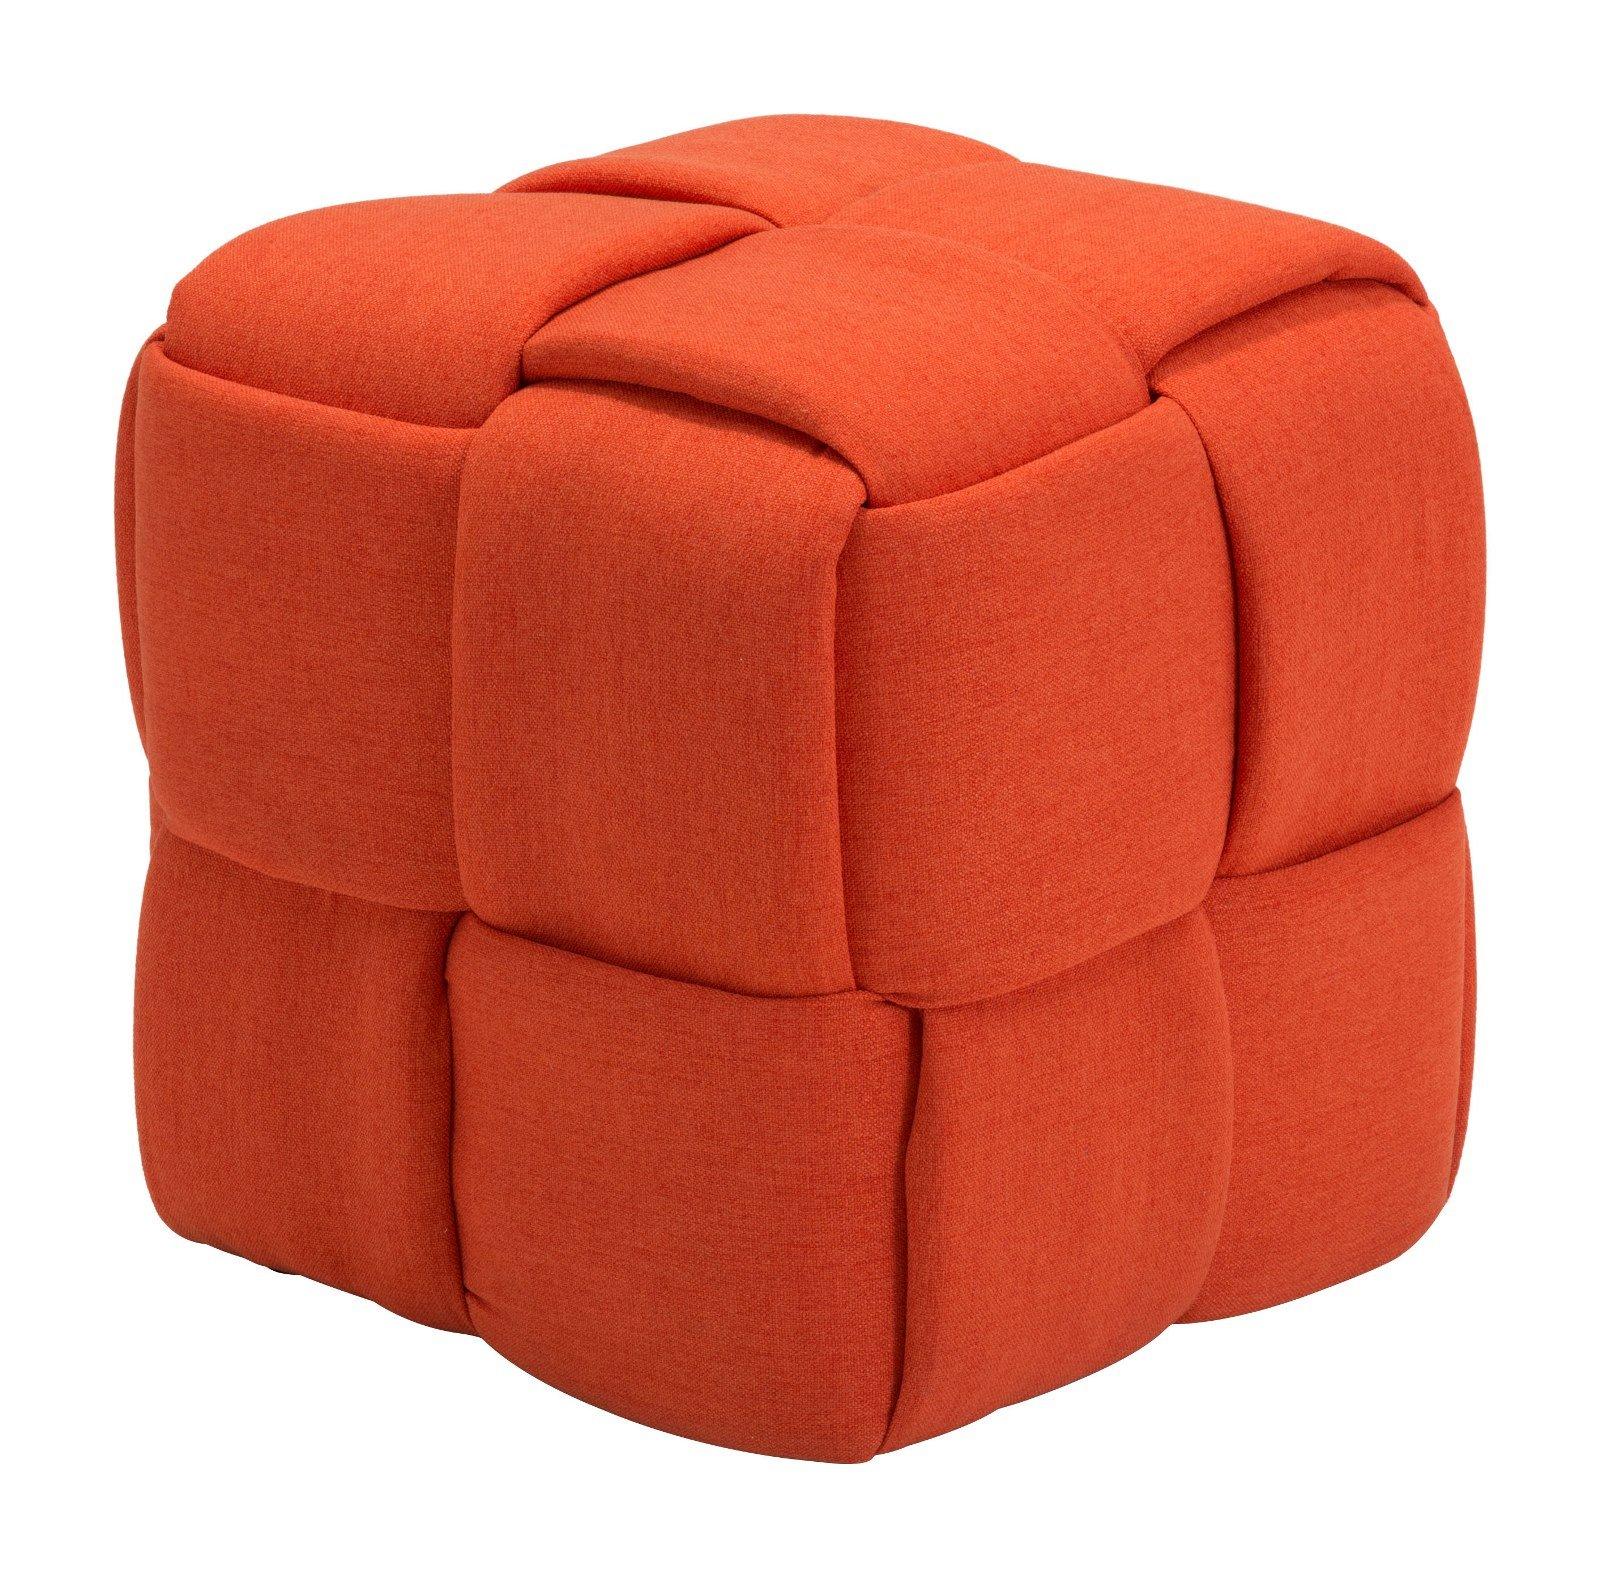 Modern Contemporary Urban Design Living Lounge Room Stool Pouf, Orange, Fabric